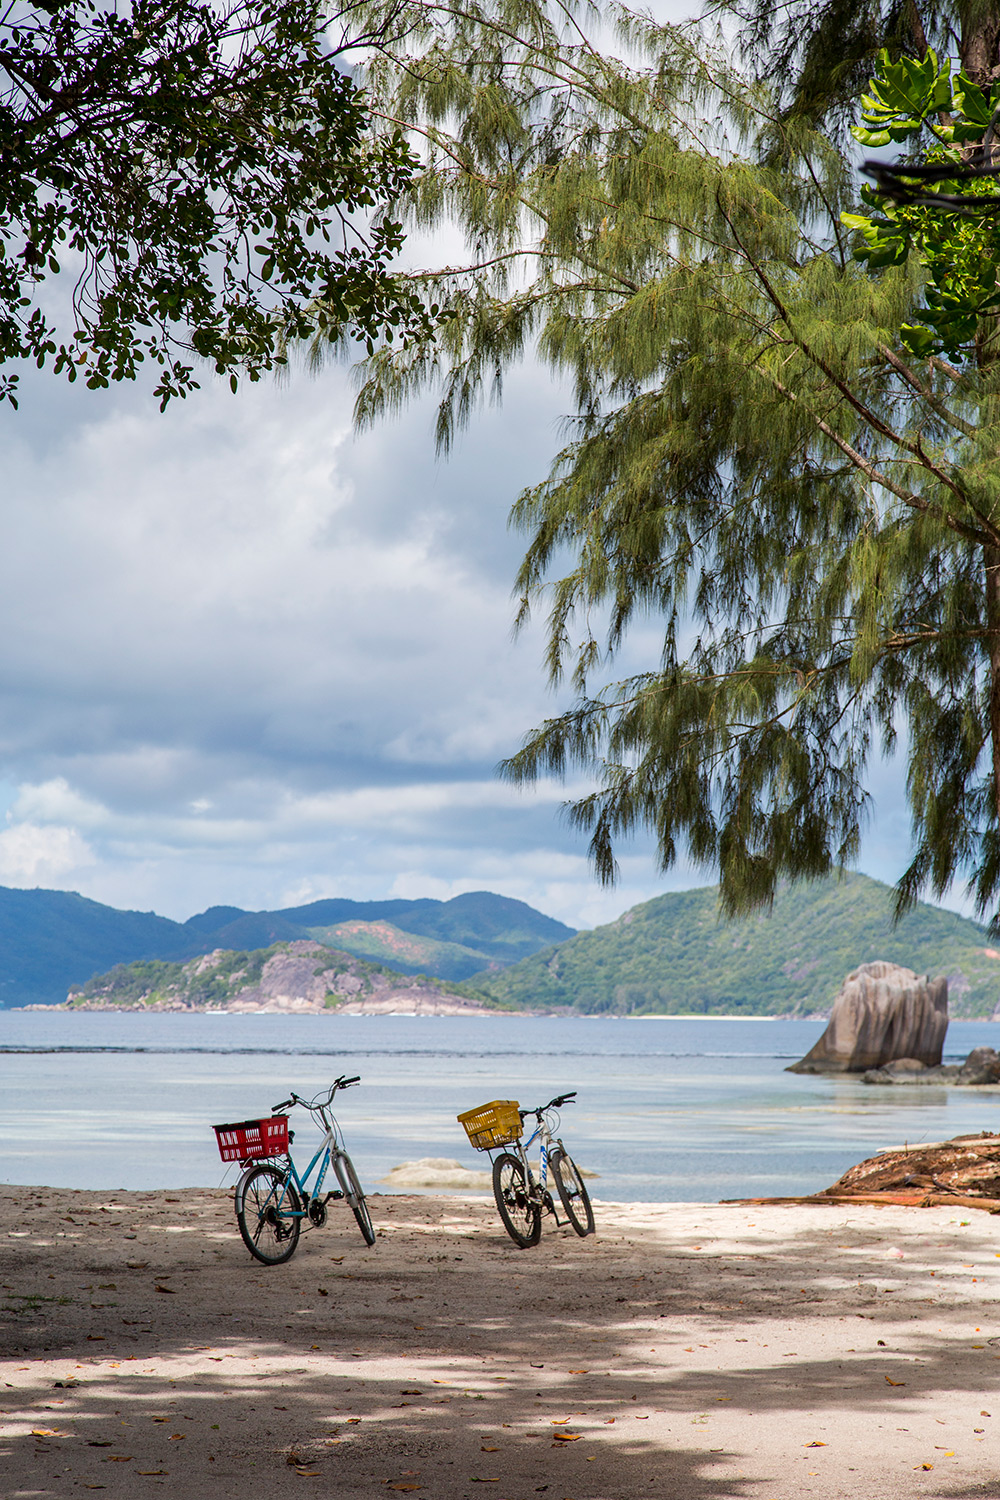 LaDigue_Seychelles_080.jpg